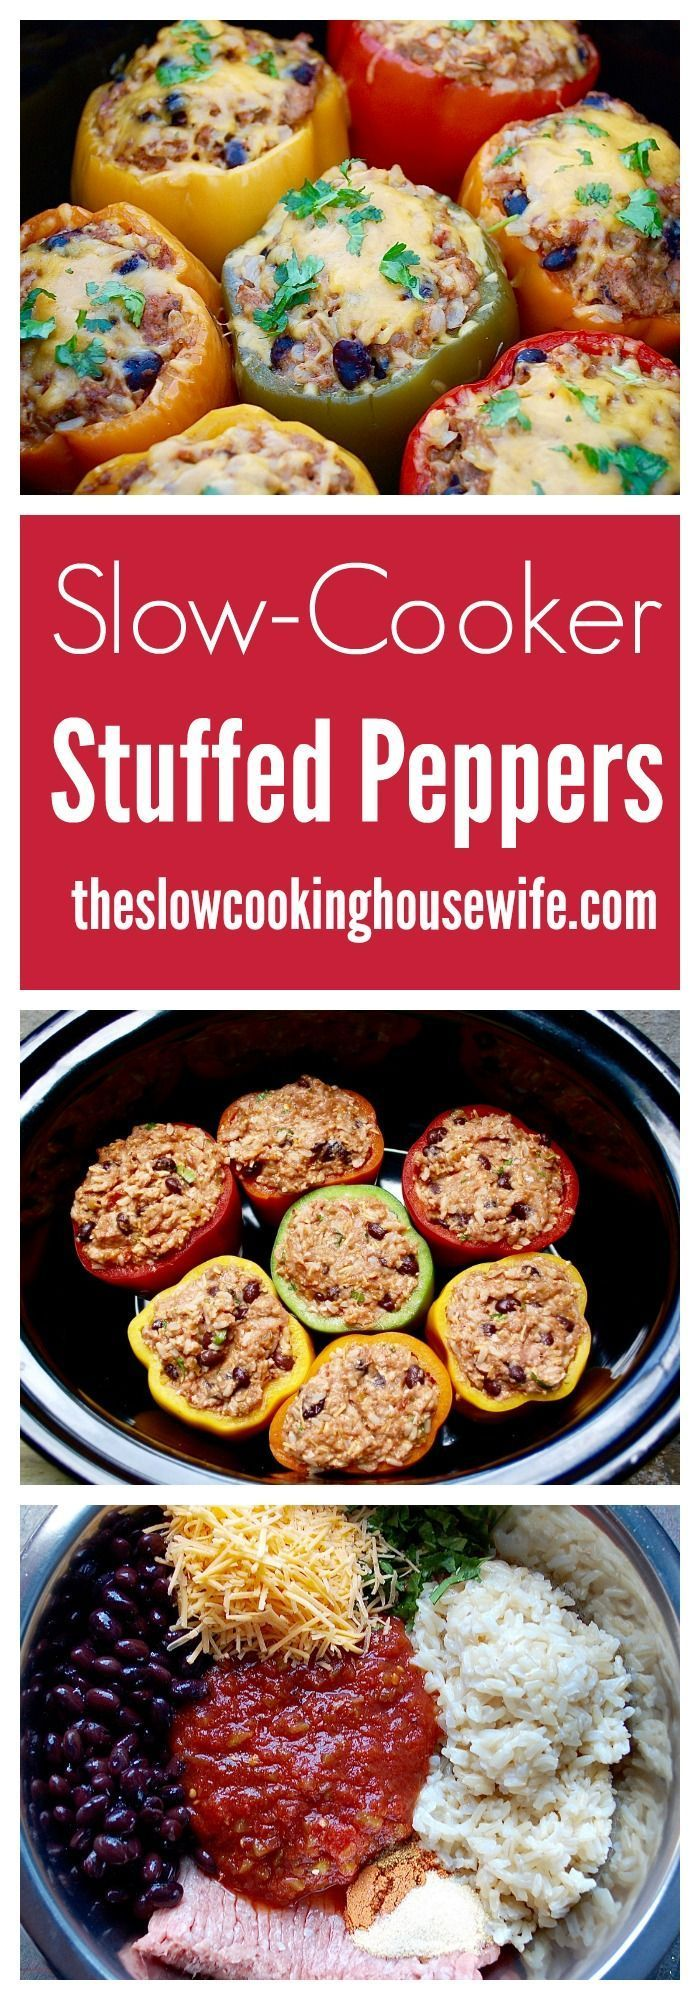 Crock Pot Stuffed Peppers! Easy, delicious, healthy, and packed with protein! So easy! www.theslowcookin... #healthycrockpots